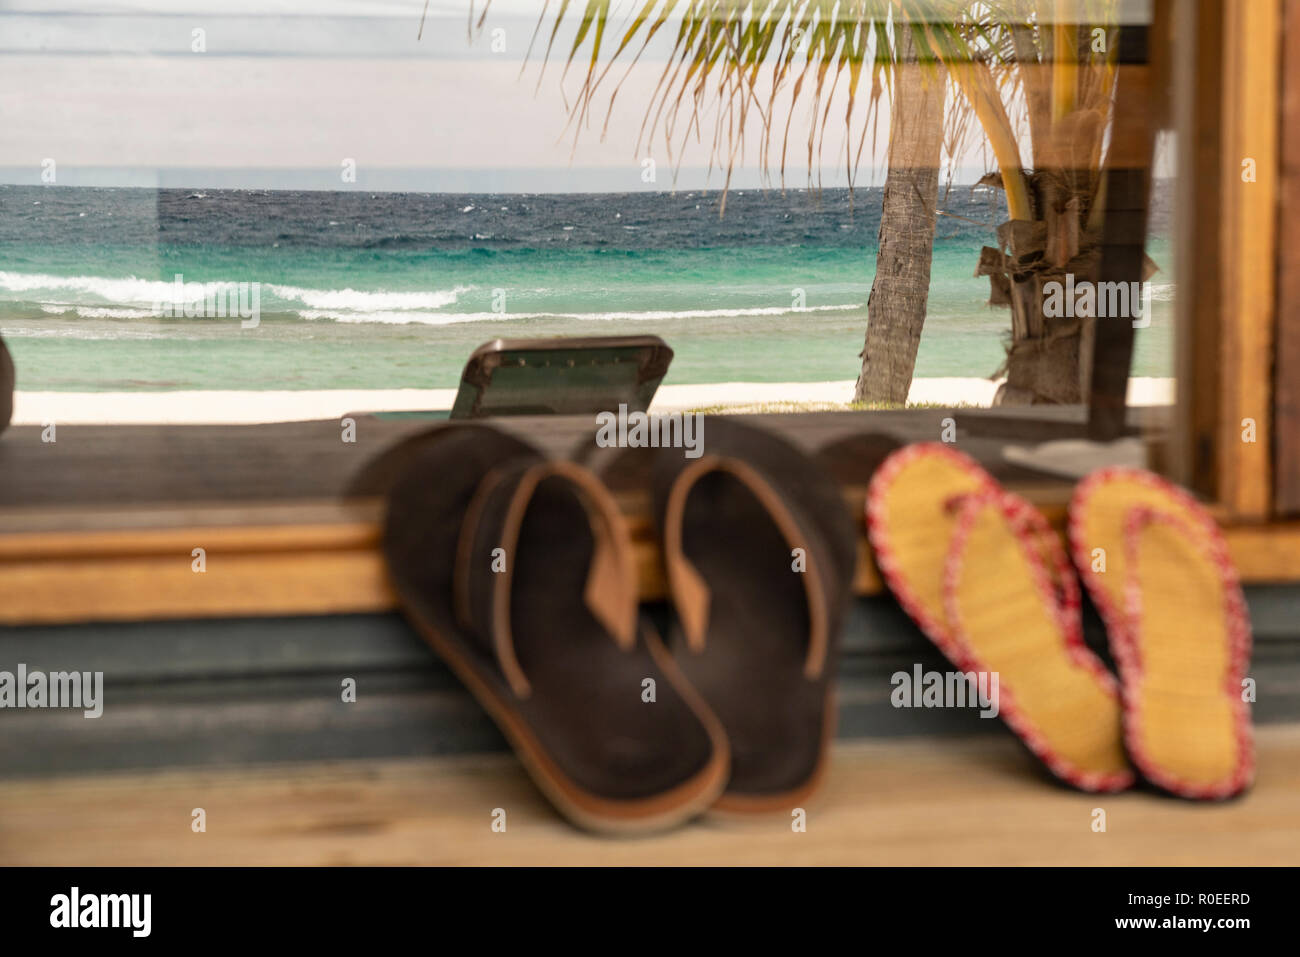 Two pairs of Flip Flops on a porch at the Maledives. - Stock Image